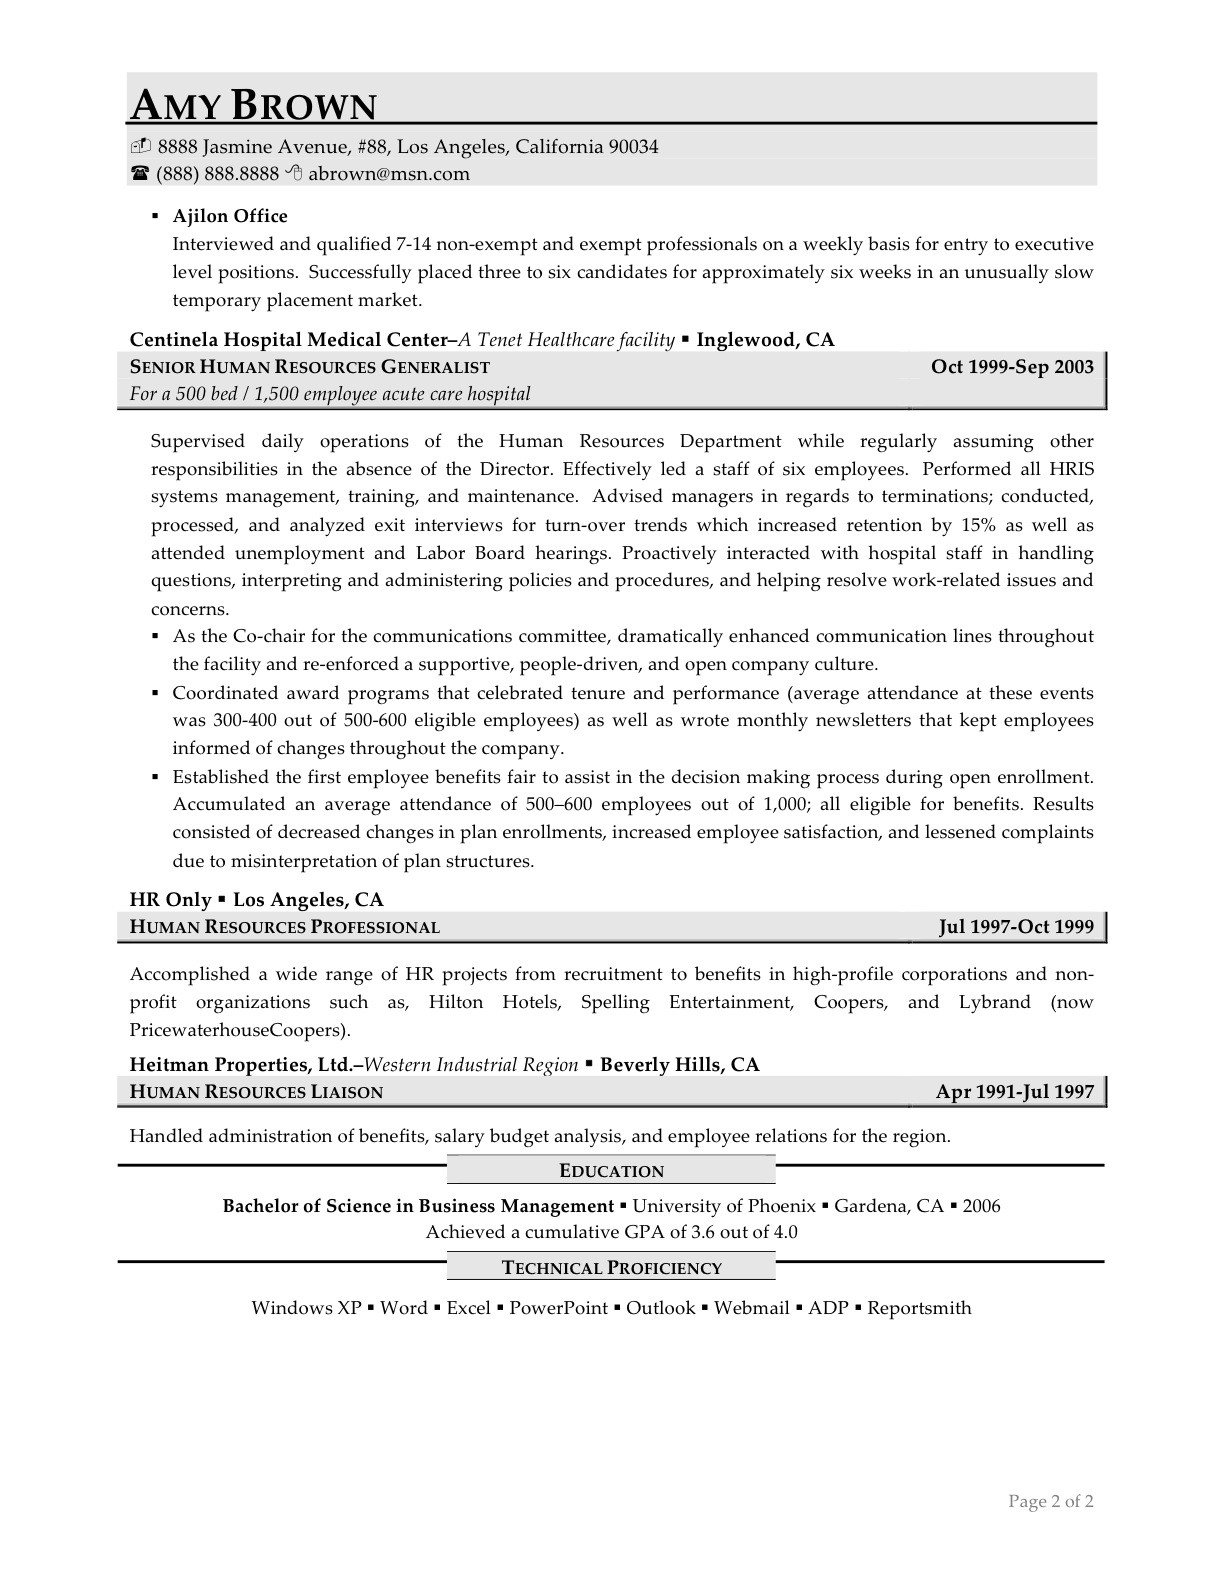 Human Resources Resume Template Human Resources Resume Examples Resume Professional Writers